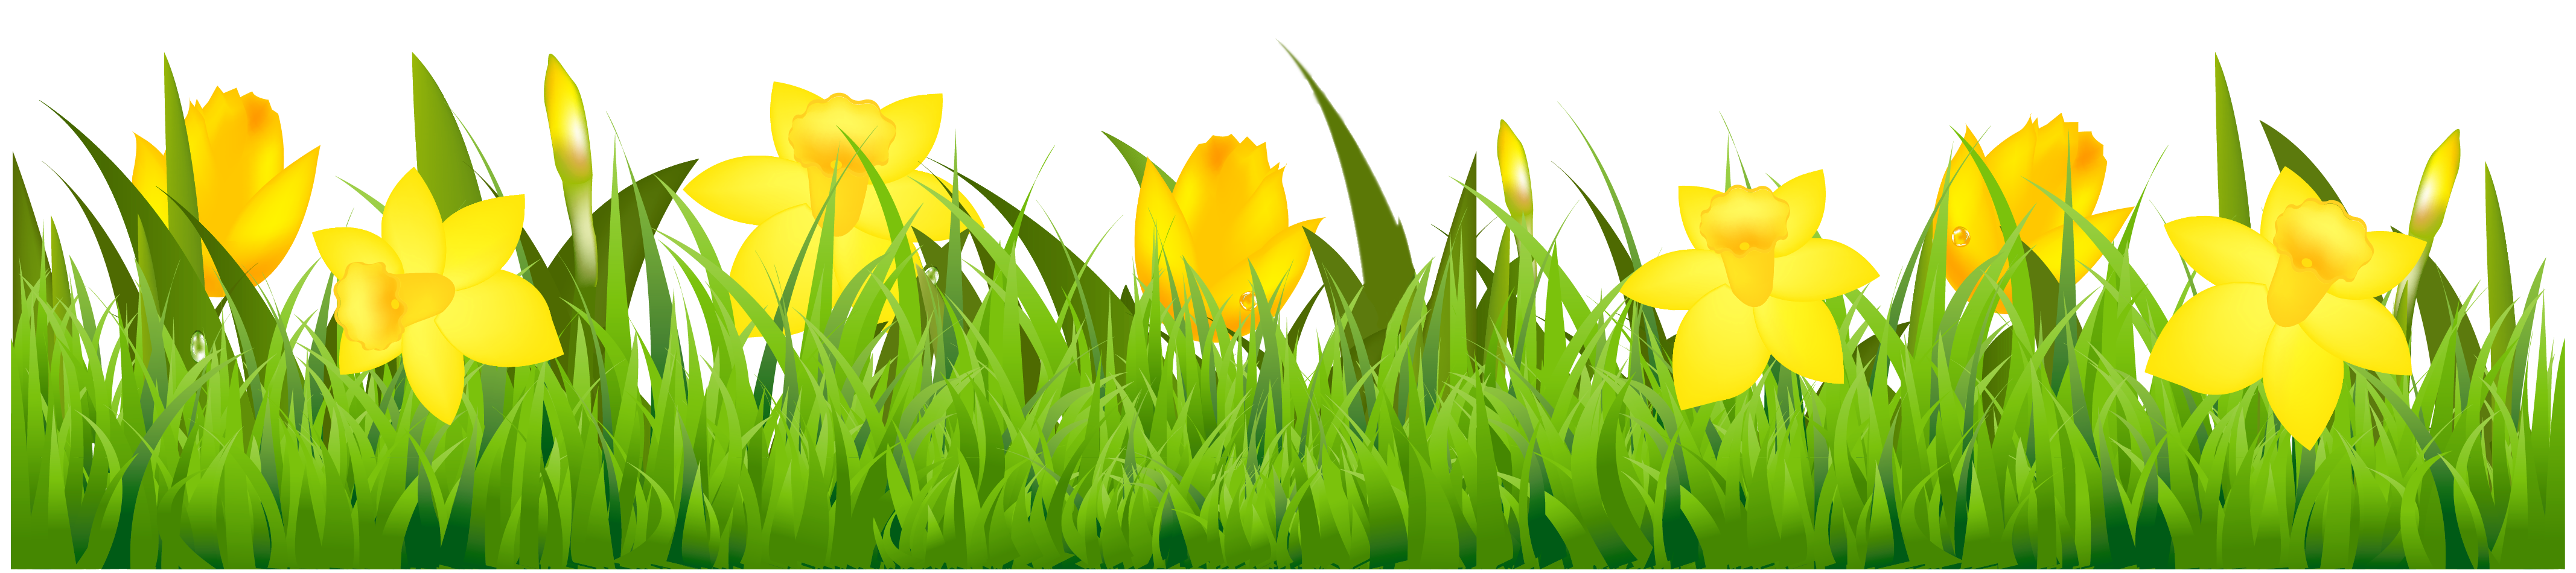 Grass with Daffodils PNG Clipart.